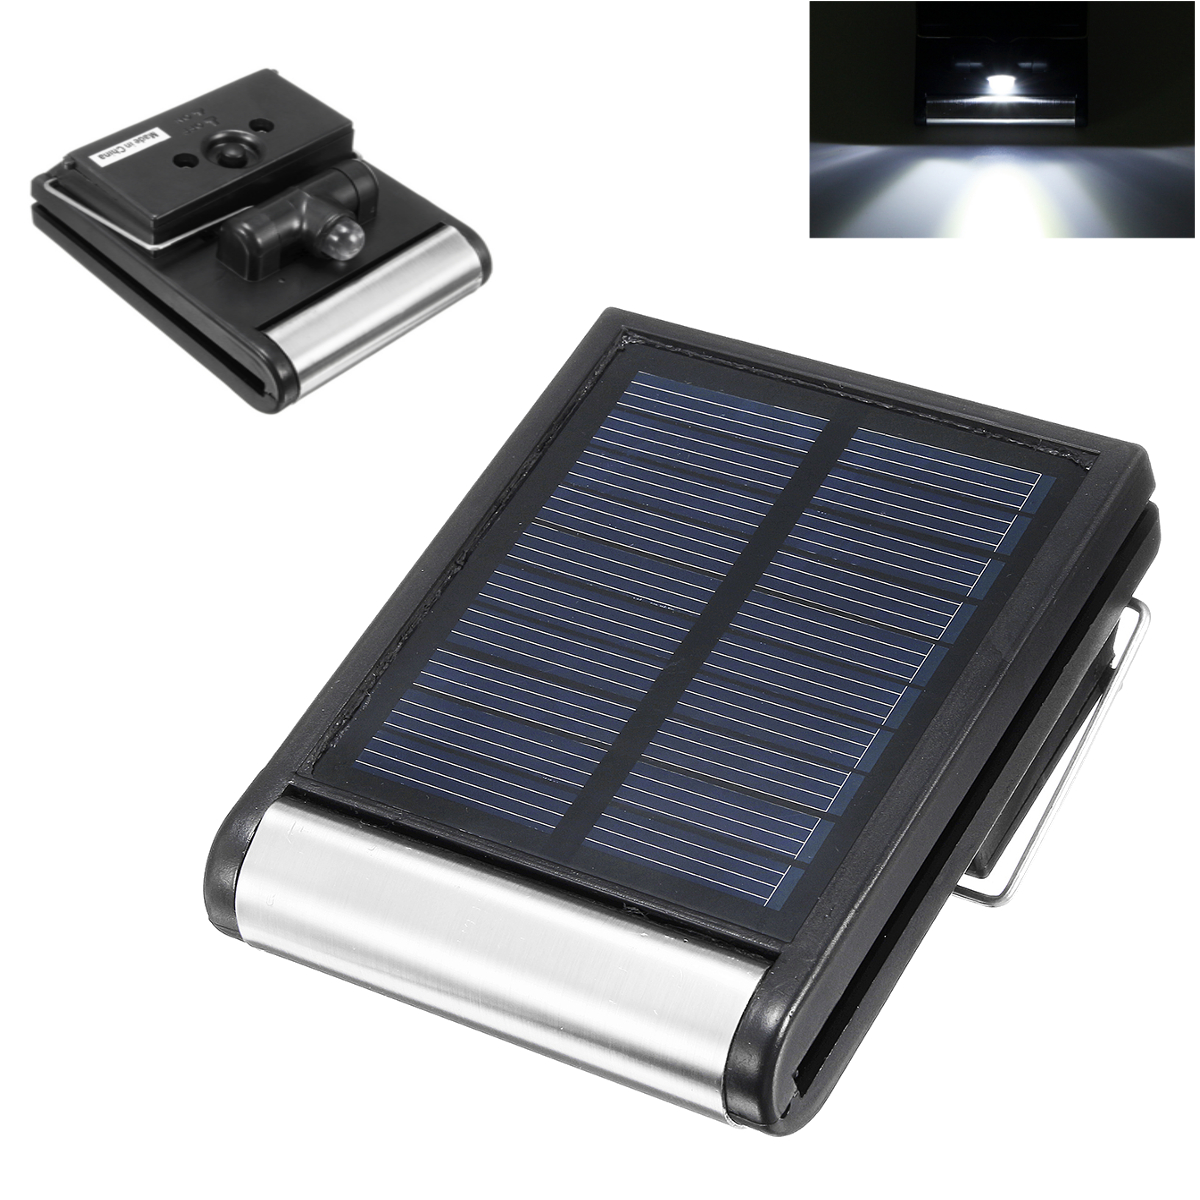 Outdoor Lights Portable: Waterproof Portable Outdoor Camping Solar Light Emergency